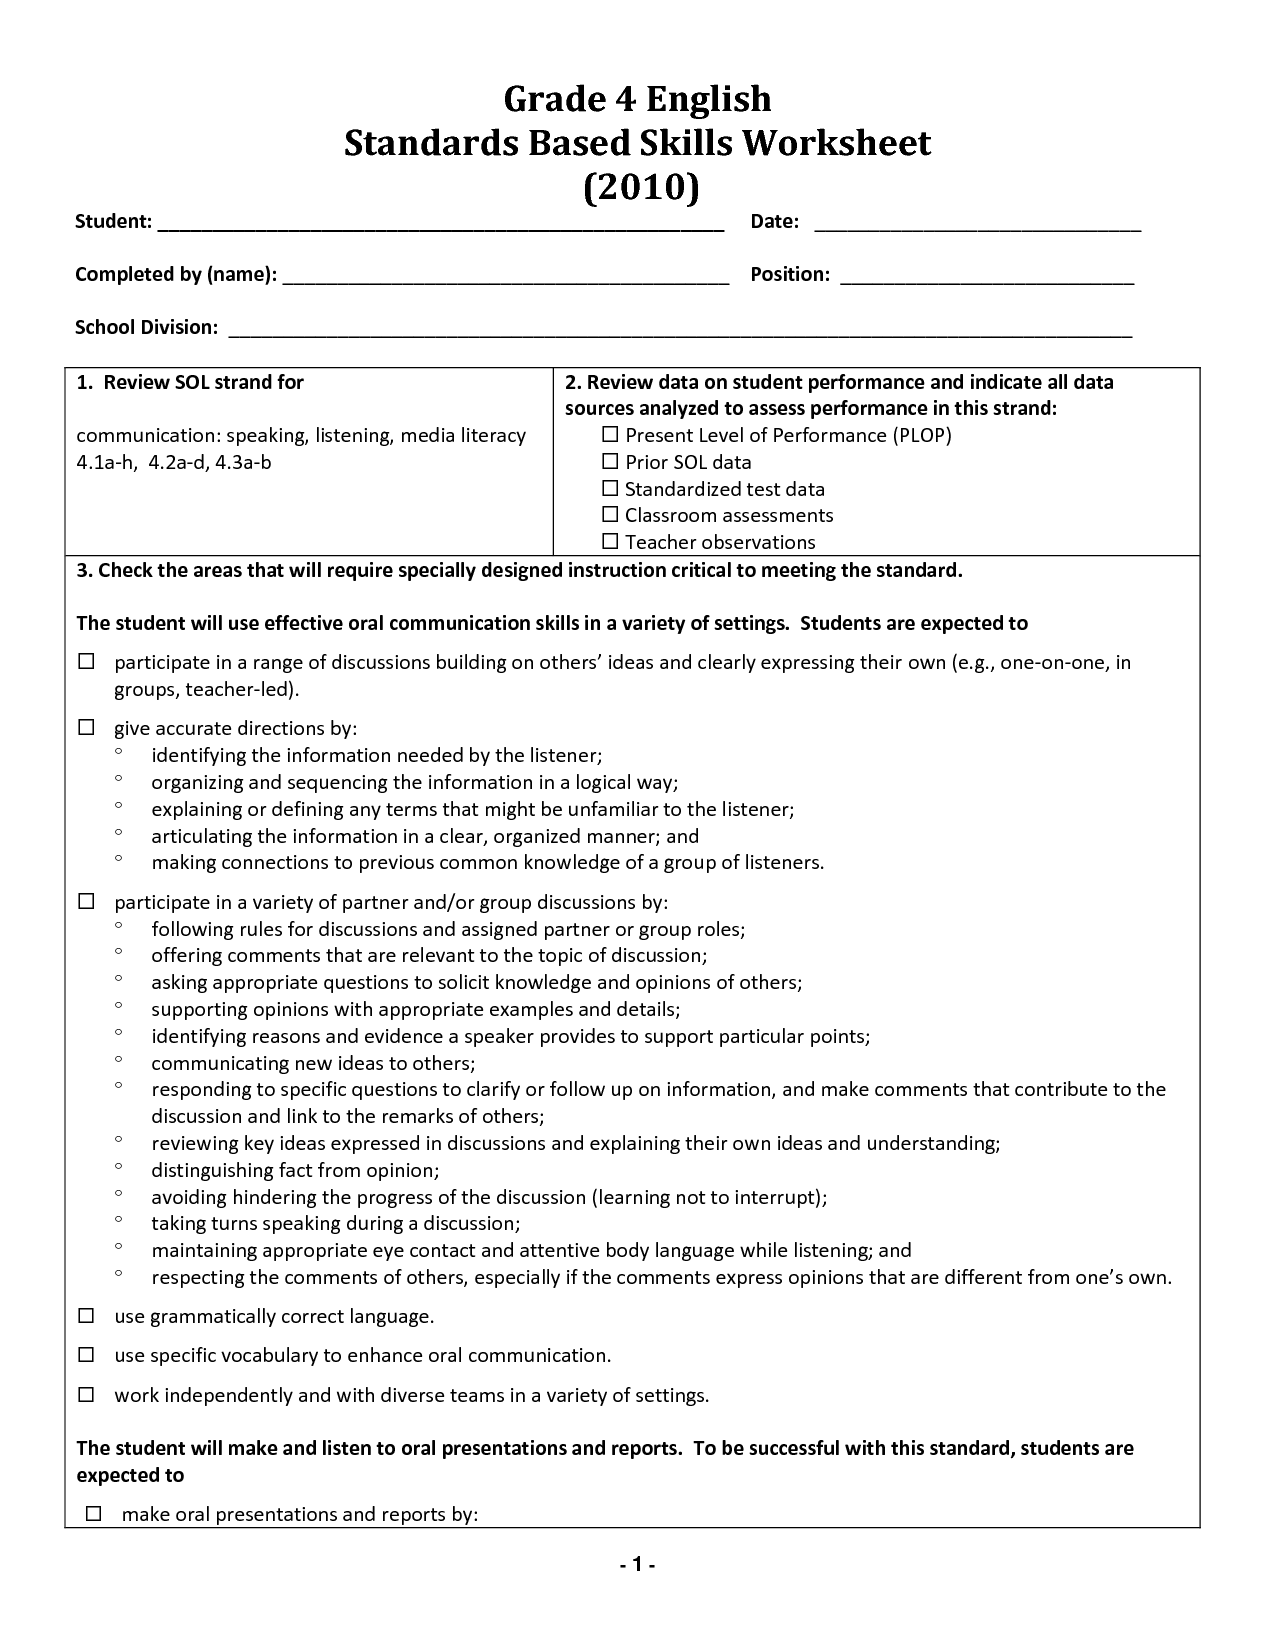 18 Best Images Of Free English Worksheets Grade 4